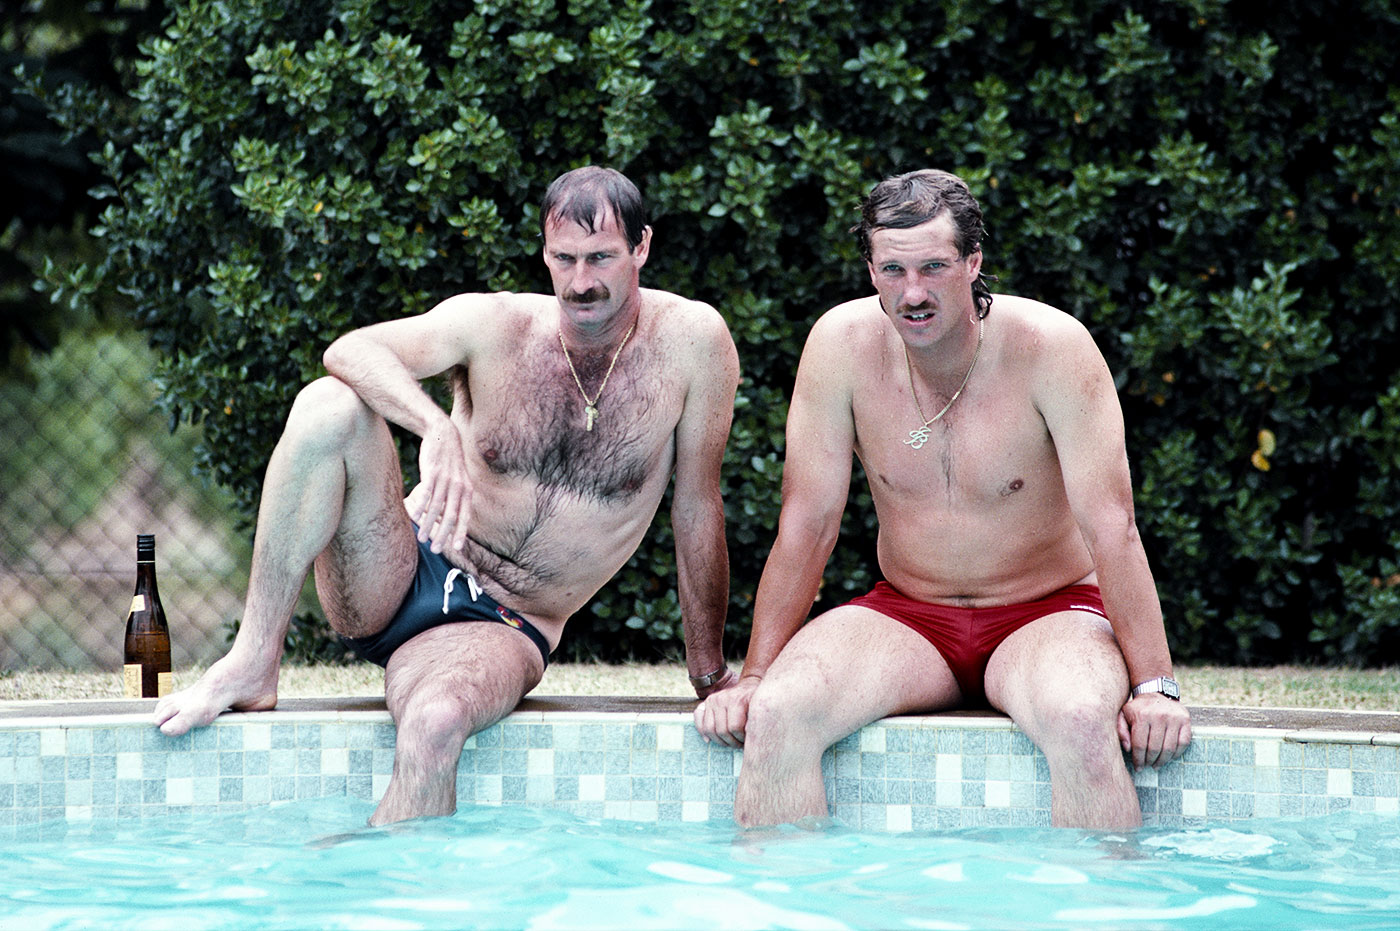 What today's fast bowlers wouldn't do to enjoy a day by the pool at a winery in the middle of a Test